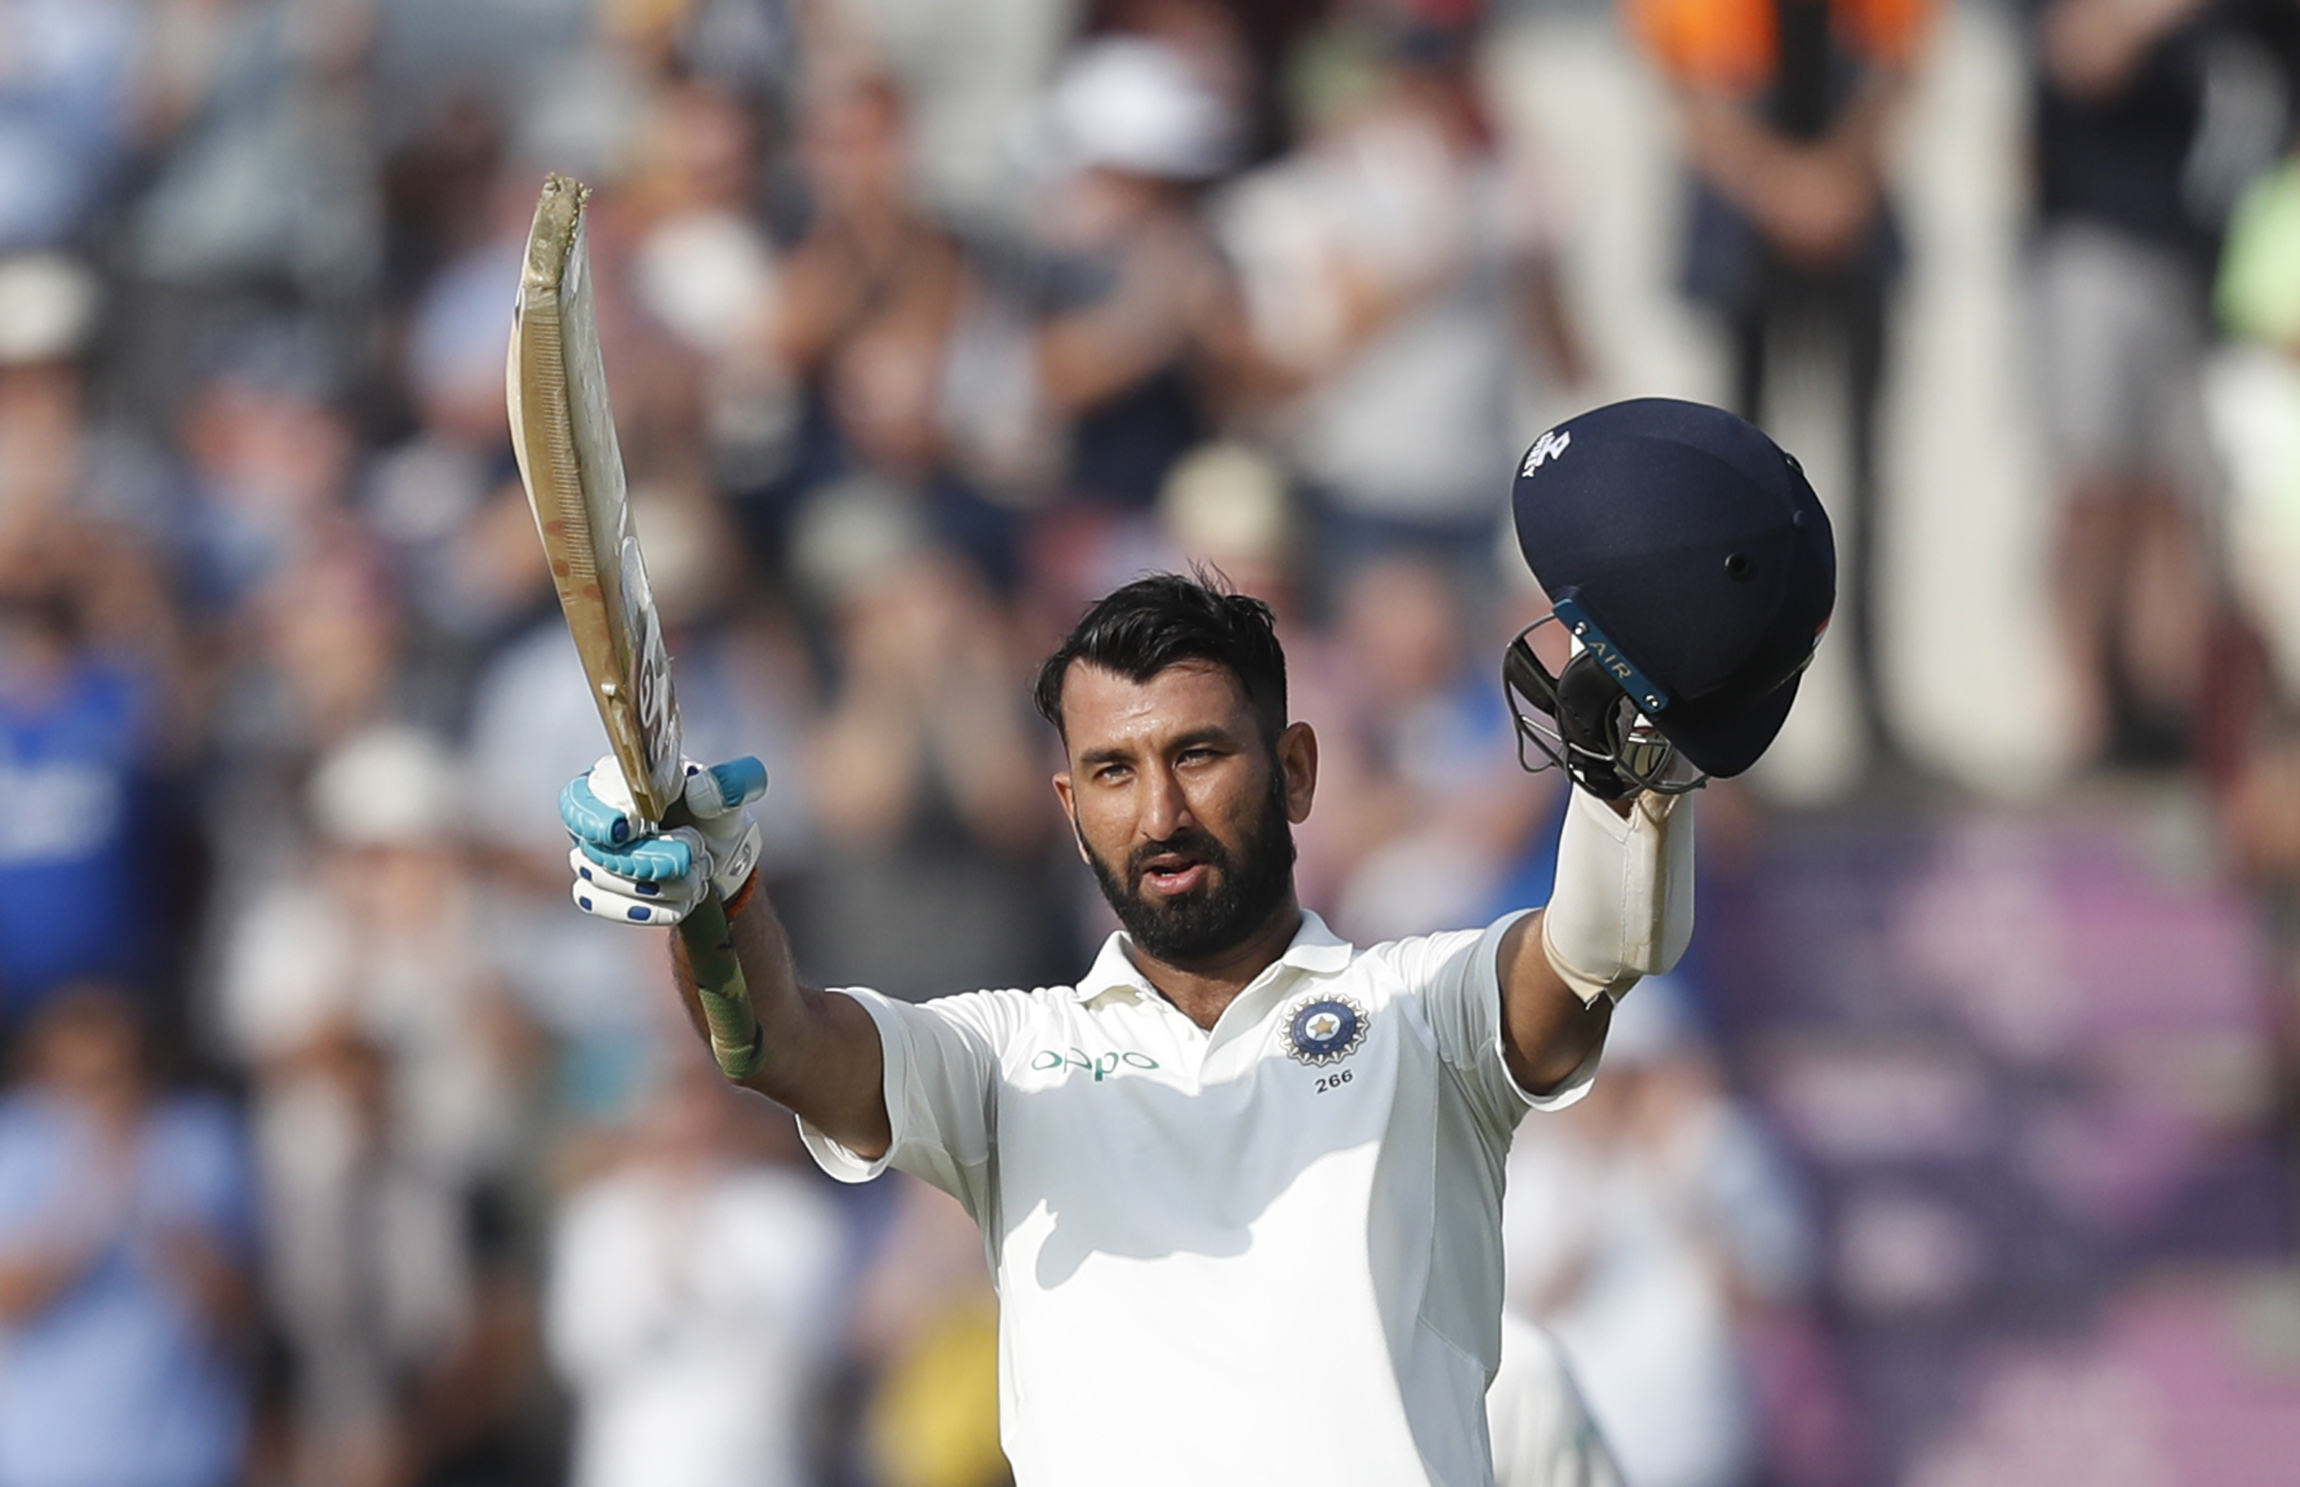 Wickets at the other end did not deter Cheteshwar Pujara as he continued batting with great composure. He soon reached a Hundred, his first of this series and 15th overall in Test cricket. The batsman completed his ton off 210 balls and rescued India of the embarrassment of falling short of England's total. (Image - AP)